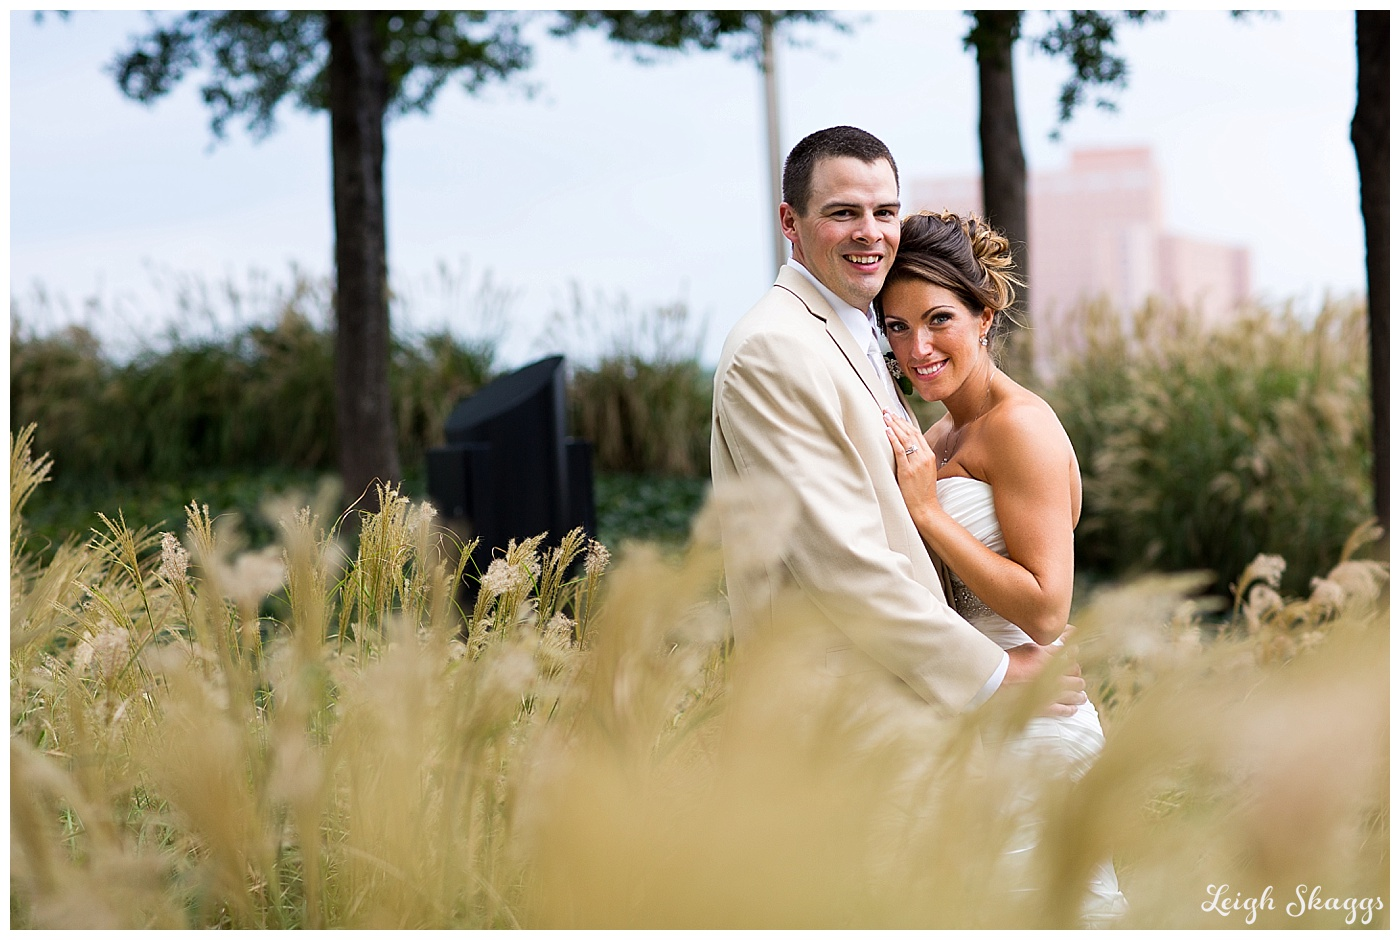 Tracey & Richard are Married!!  Their Half Moone Cruise and Celebration Center Sneak Peek!